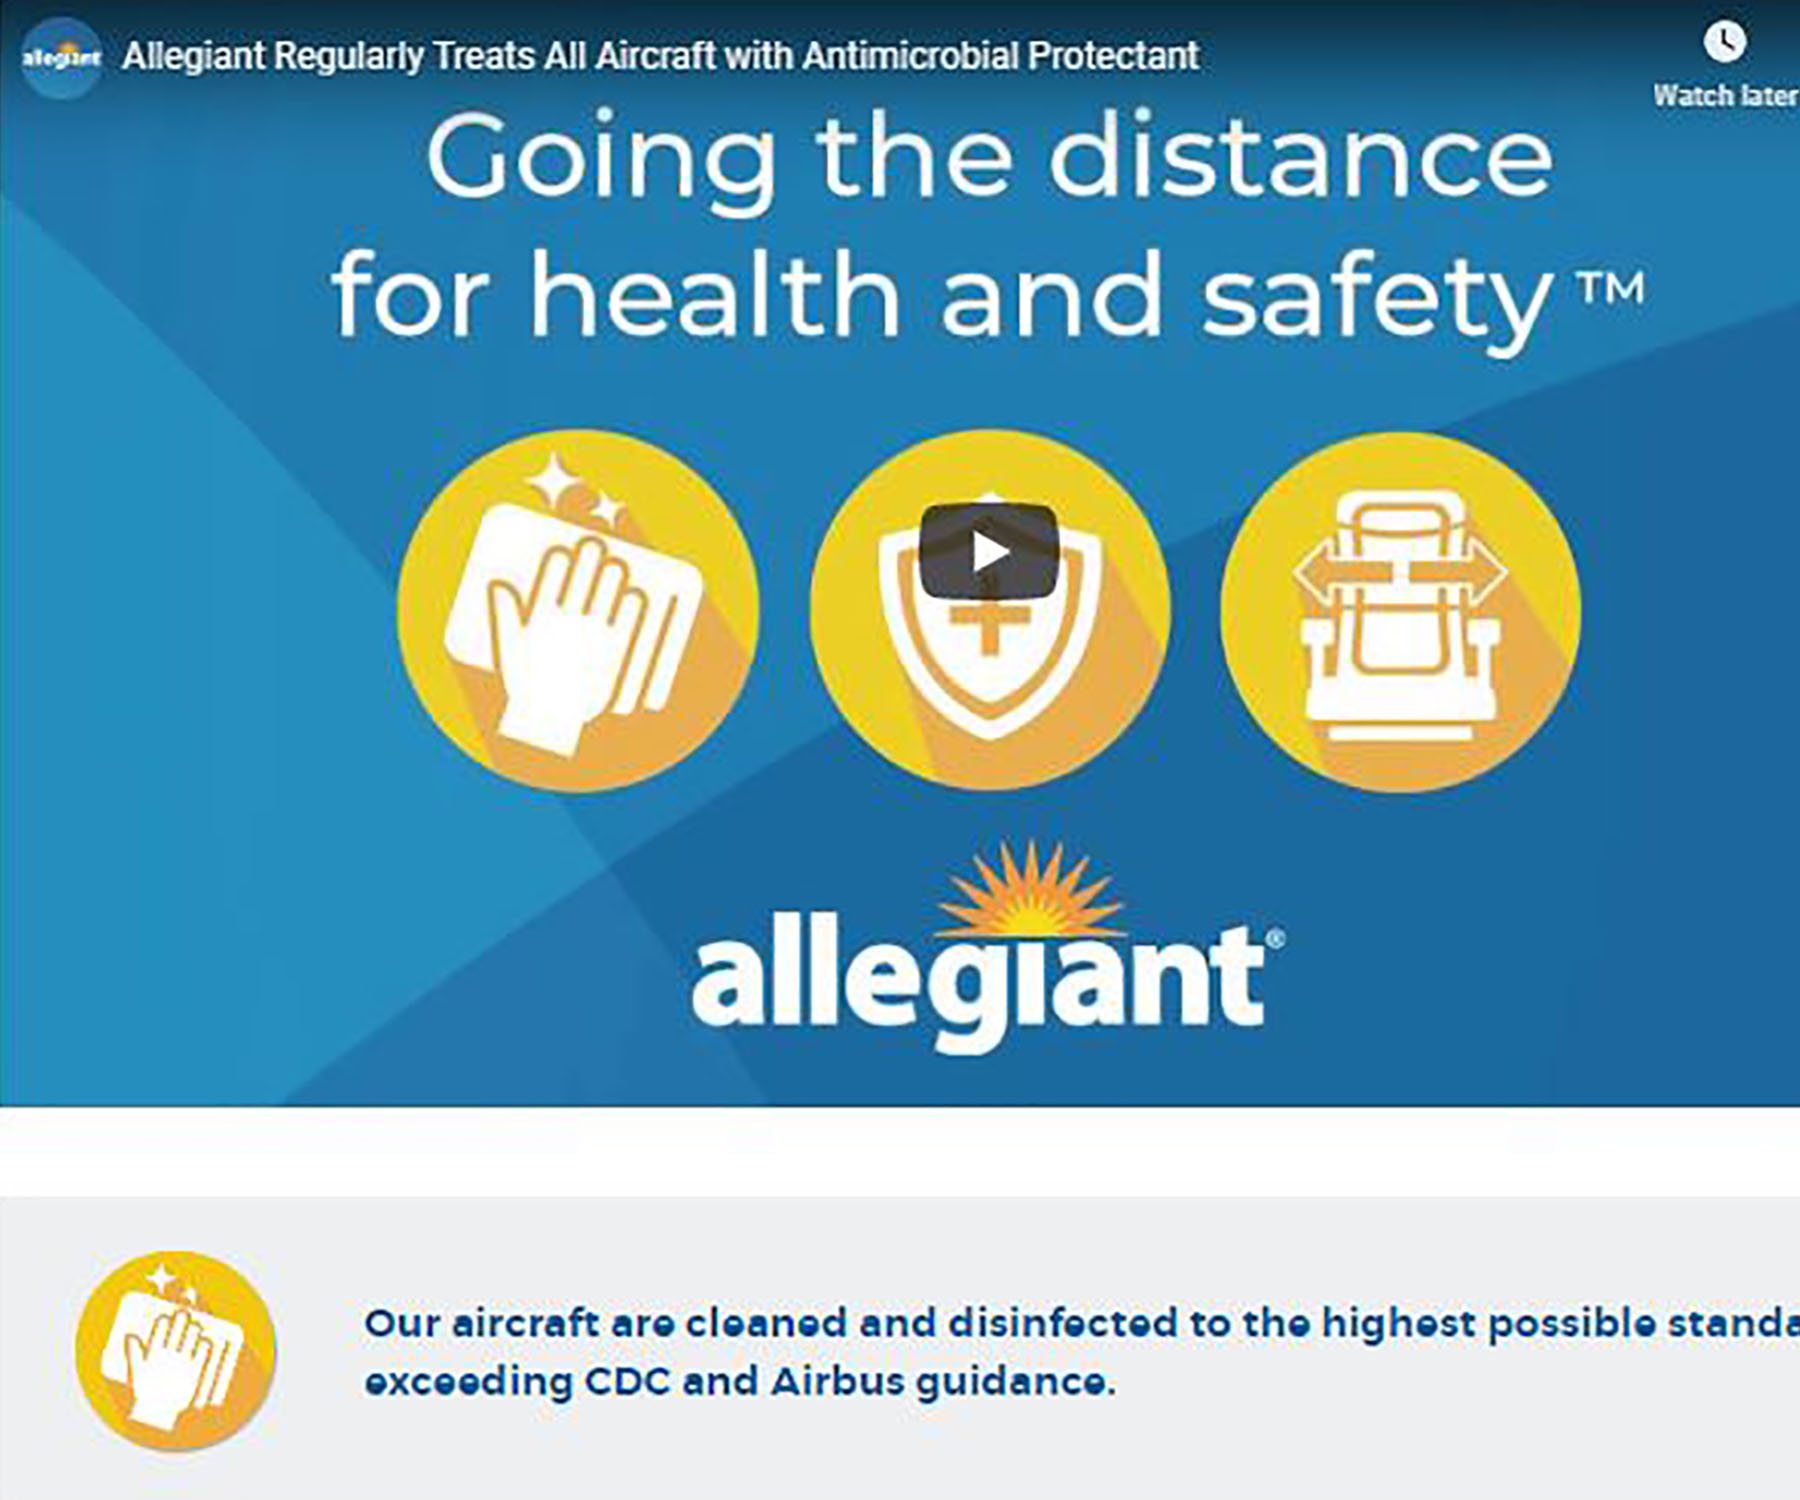 Allegiant going the distance